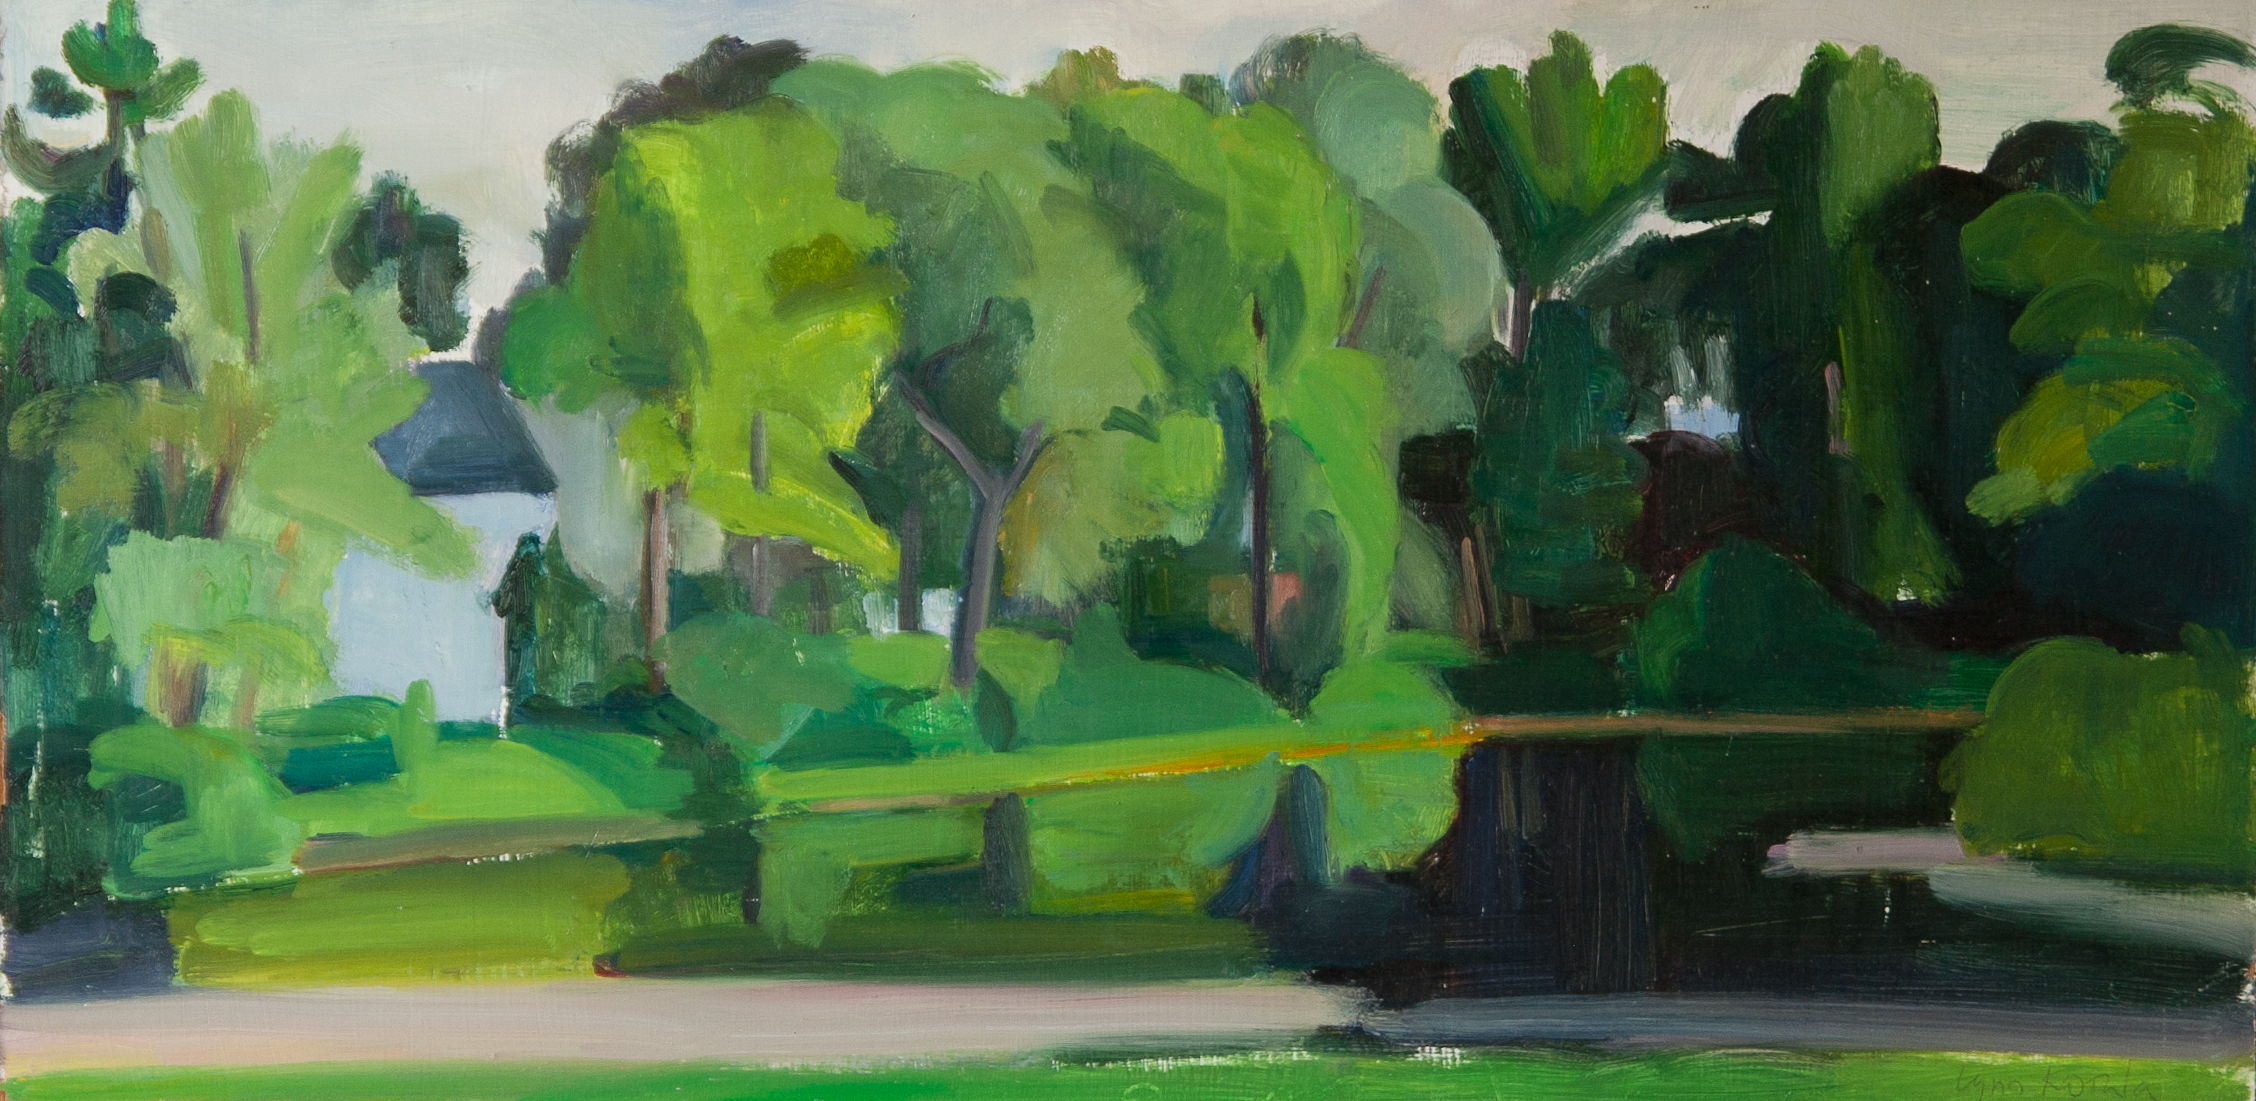 "Blair Pond, 5 PM, oil on panel, 10"" x 20"""